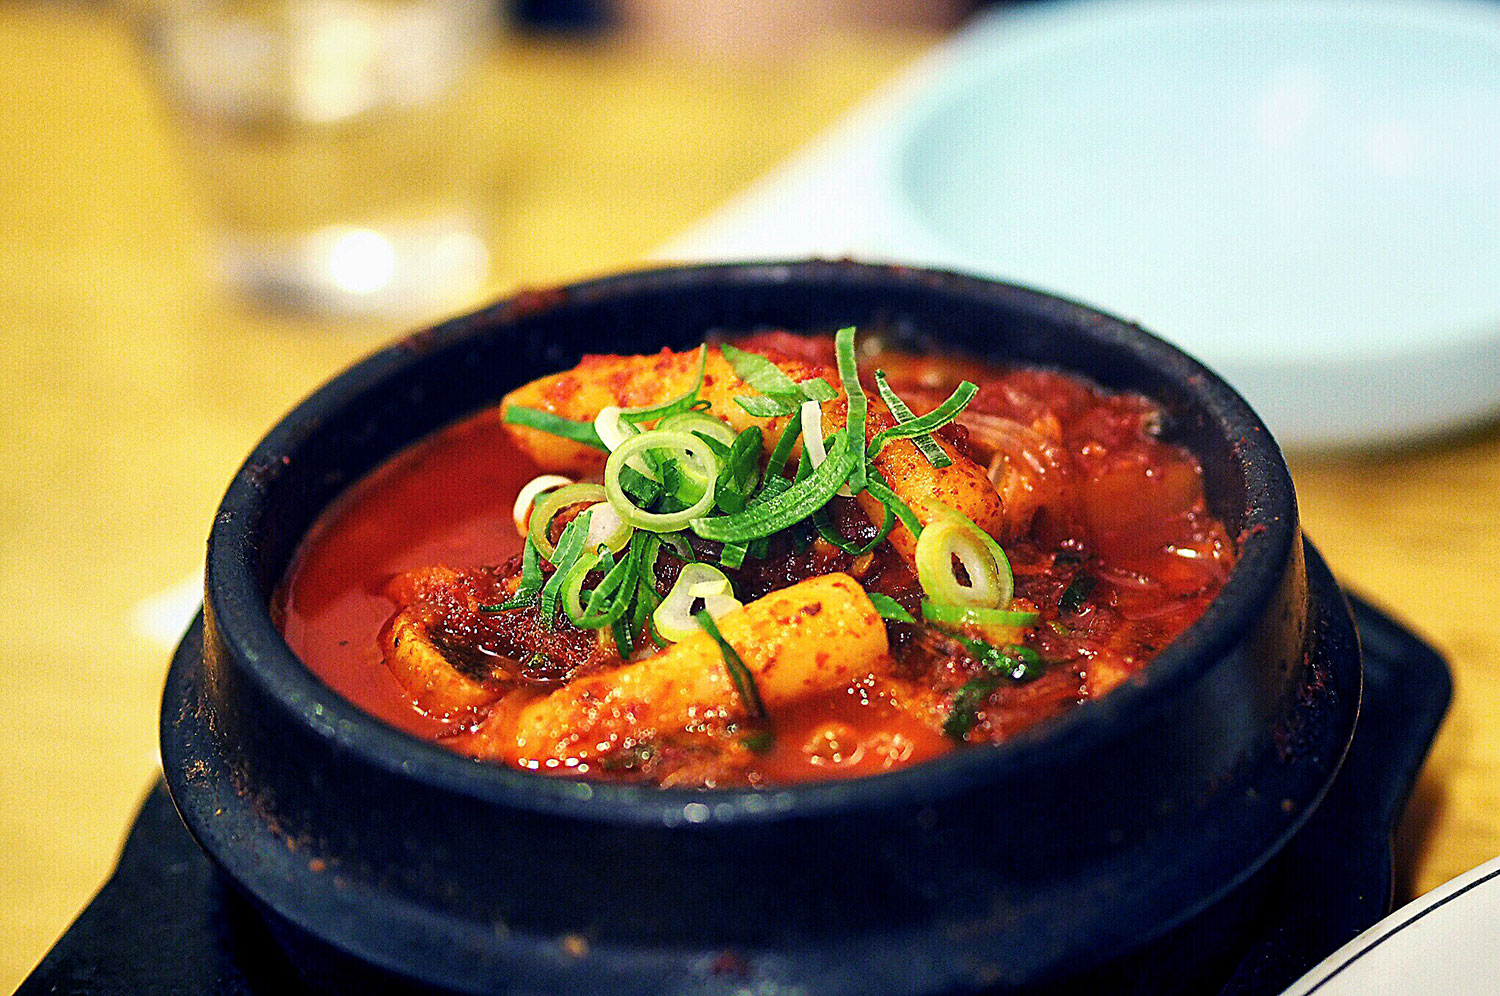 Sydney Food Blog Review of BCD Tofu House, Epping: Stewed Beef Ribs